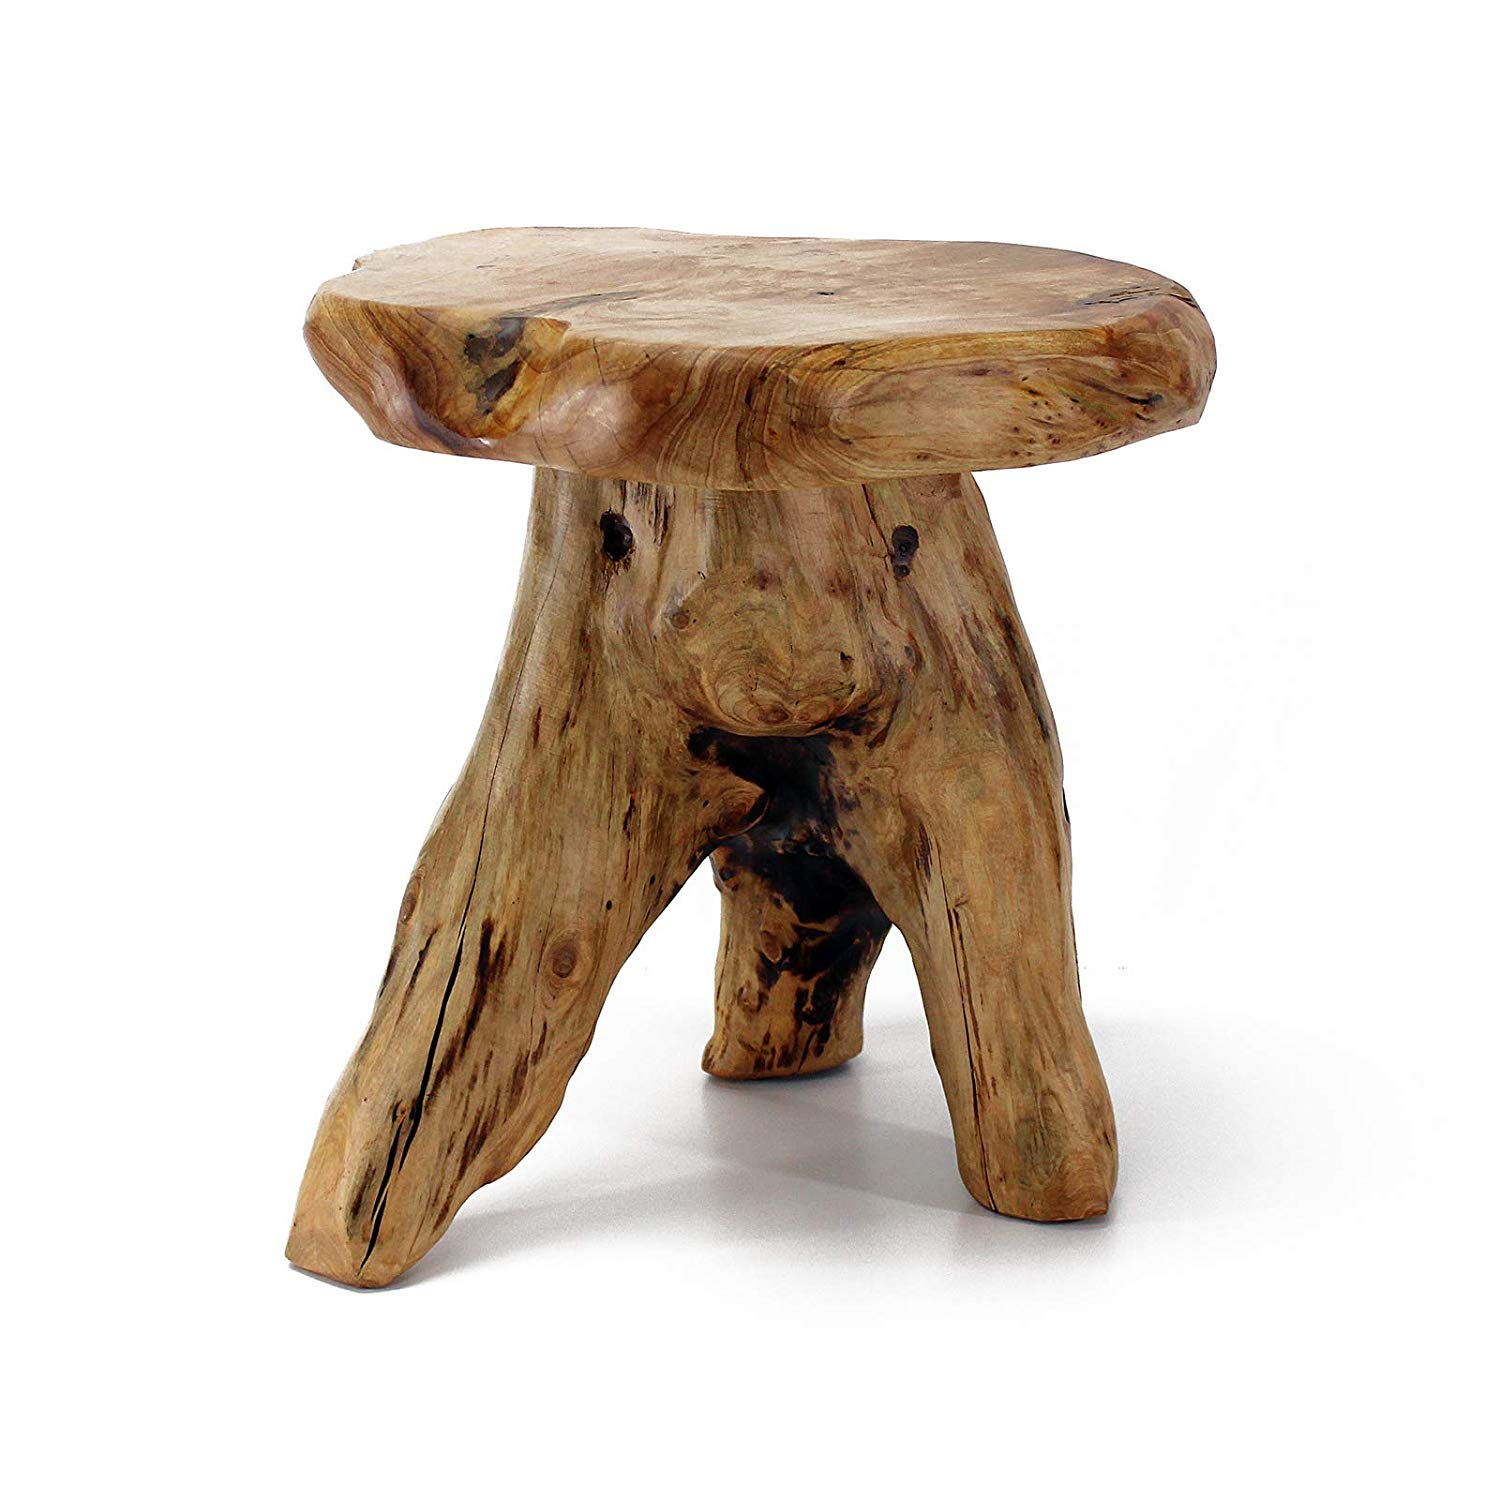 welland tree stump stool live edge natural side trunk accent table plant stand nightstand mushroom tall garden outdoor nautical nursery lamp acrylic end sauder harbor view